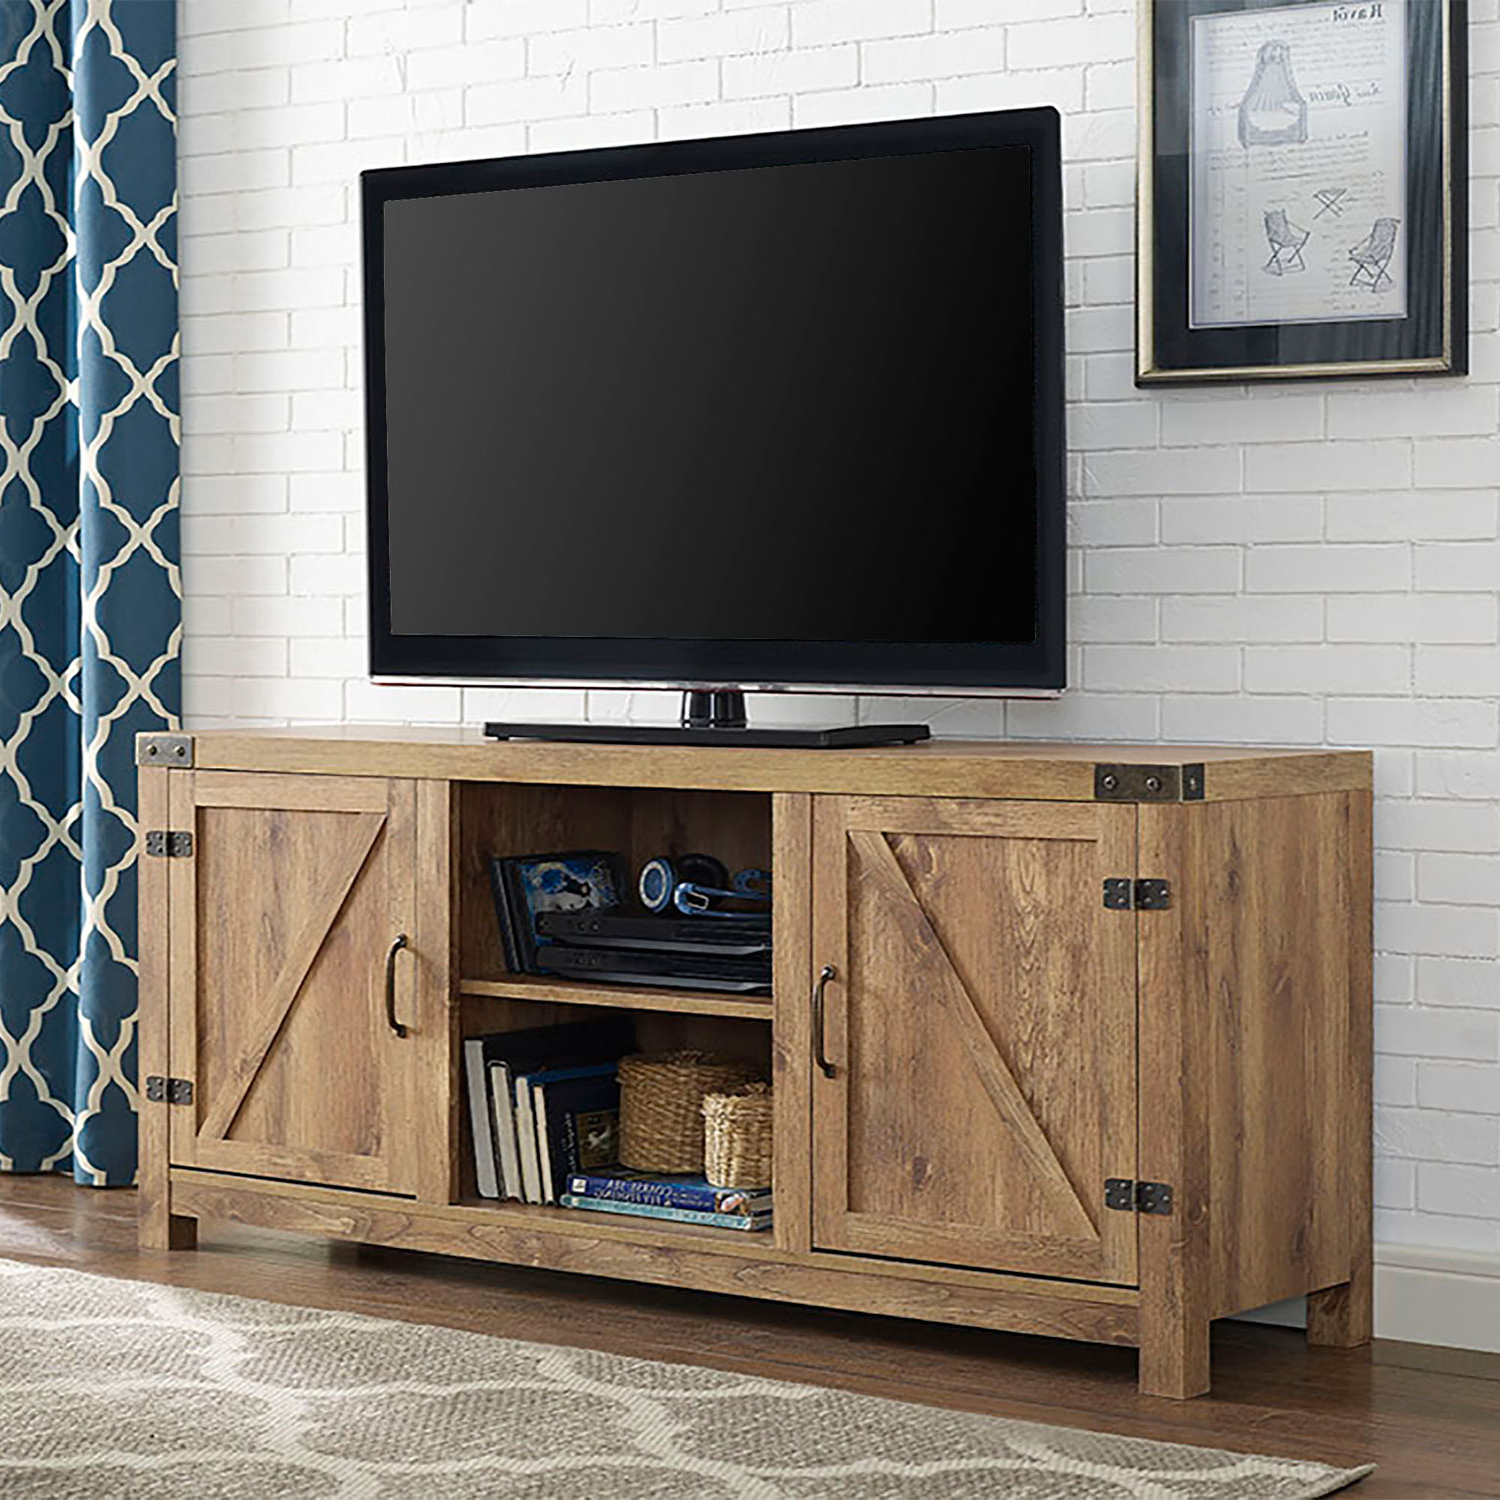 Favorite Walker Edison Furniture Co. 58 Inch Barn Door Tv Stand With Side For Under Tv Cabinets (Gallery 10 of 20)